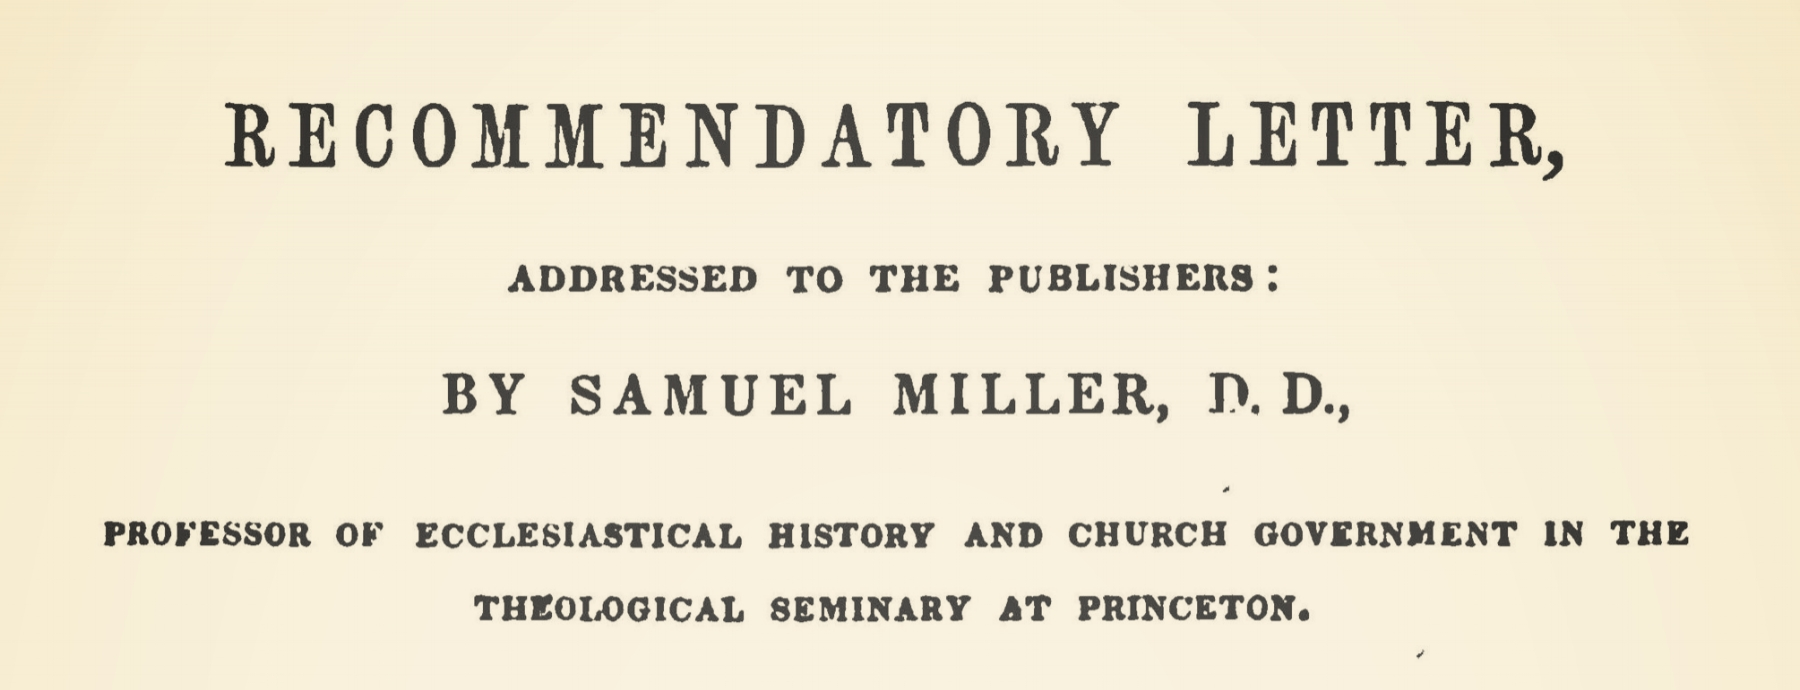 Miller, Samuel, Recommendatory Letter to Perrin's History Title Page.jpg